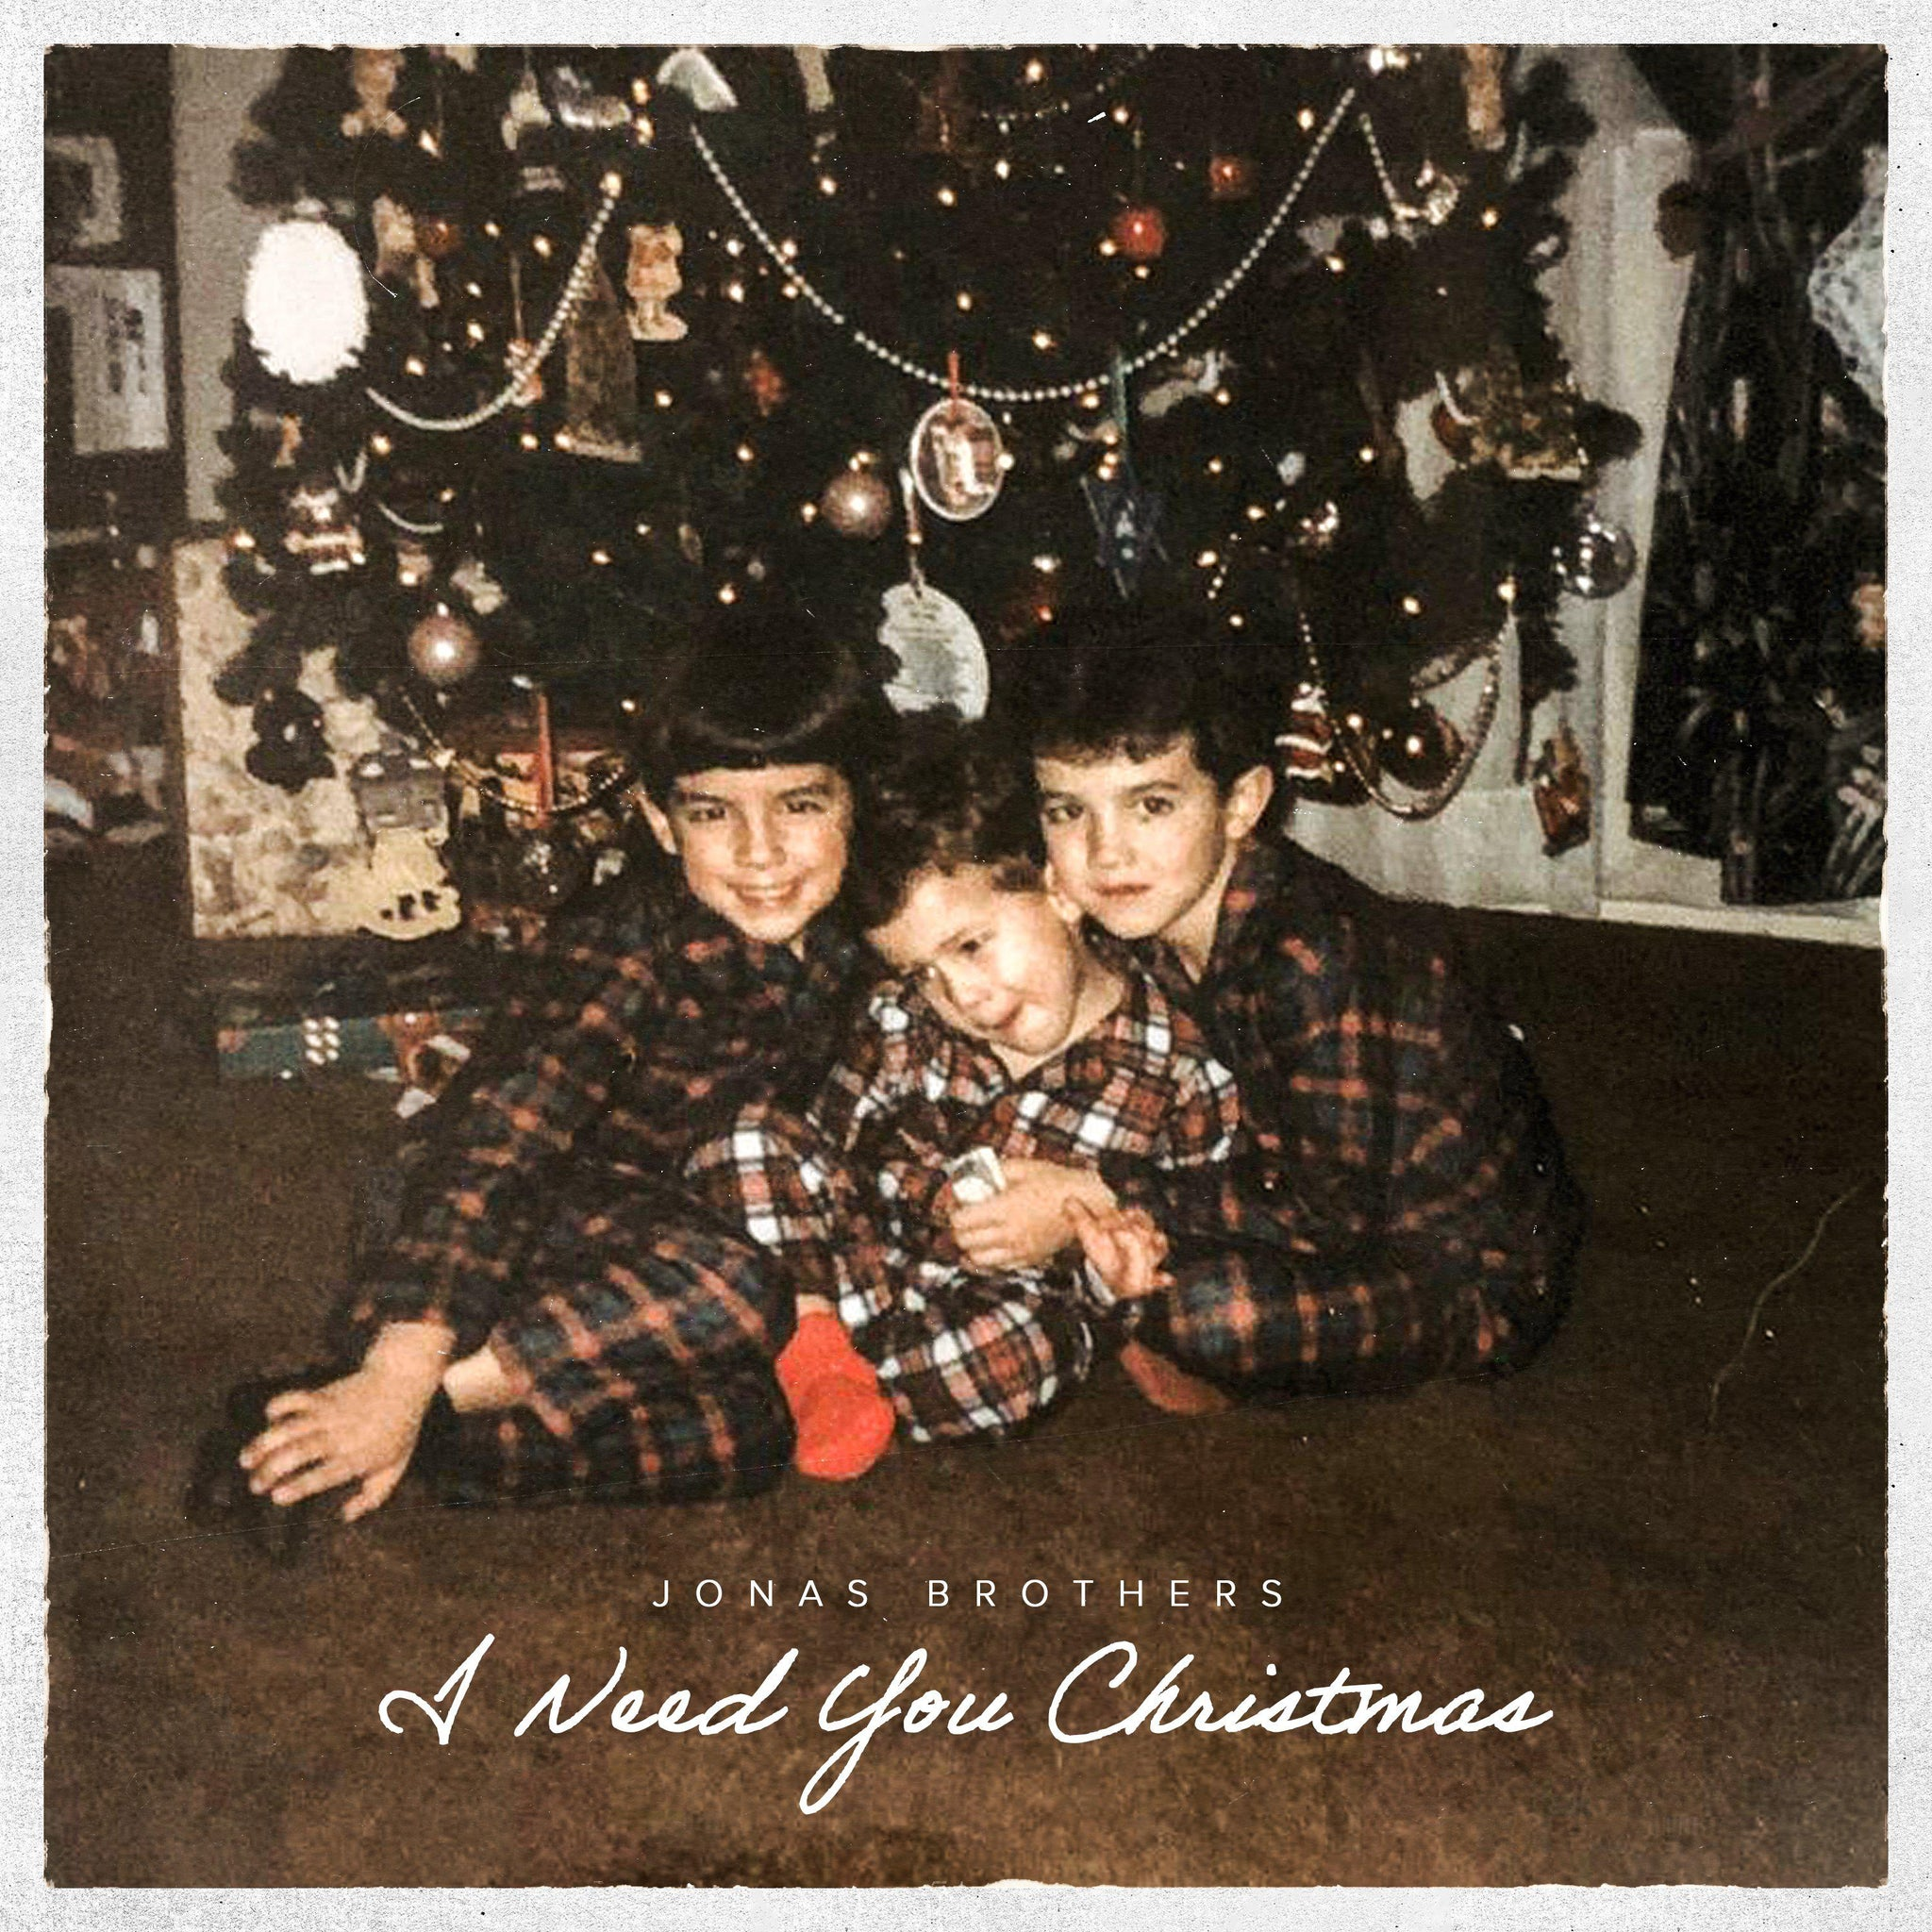 I NEED YOU CHRISTMAS DIGITAL DOWNLOAD-Jonas Brothers